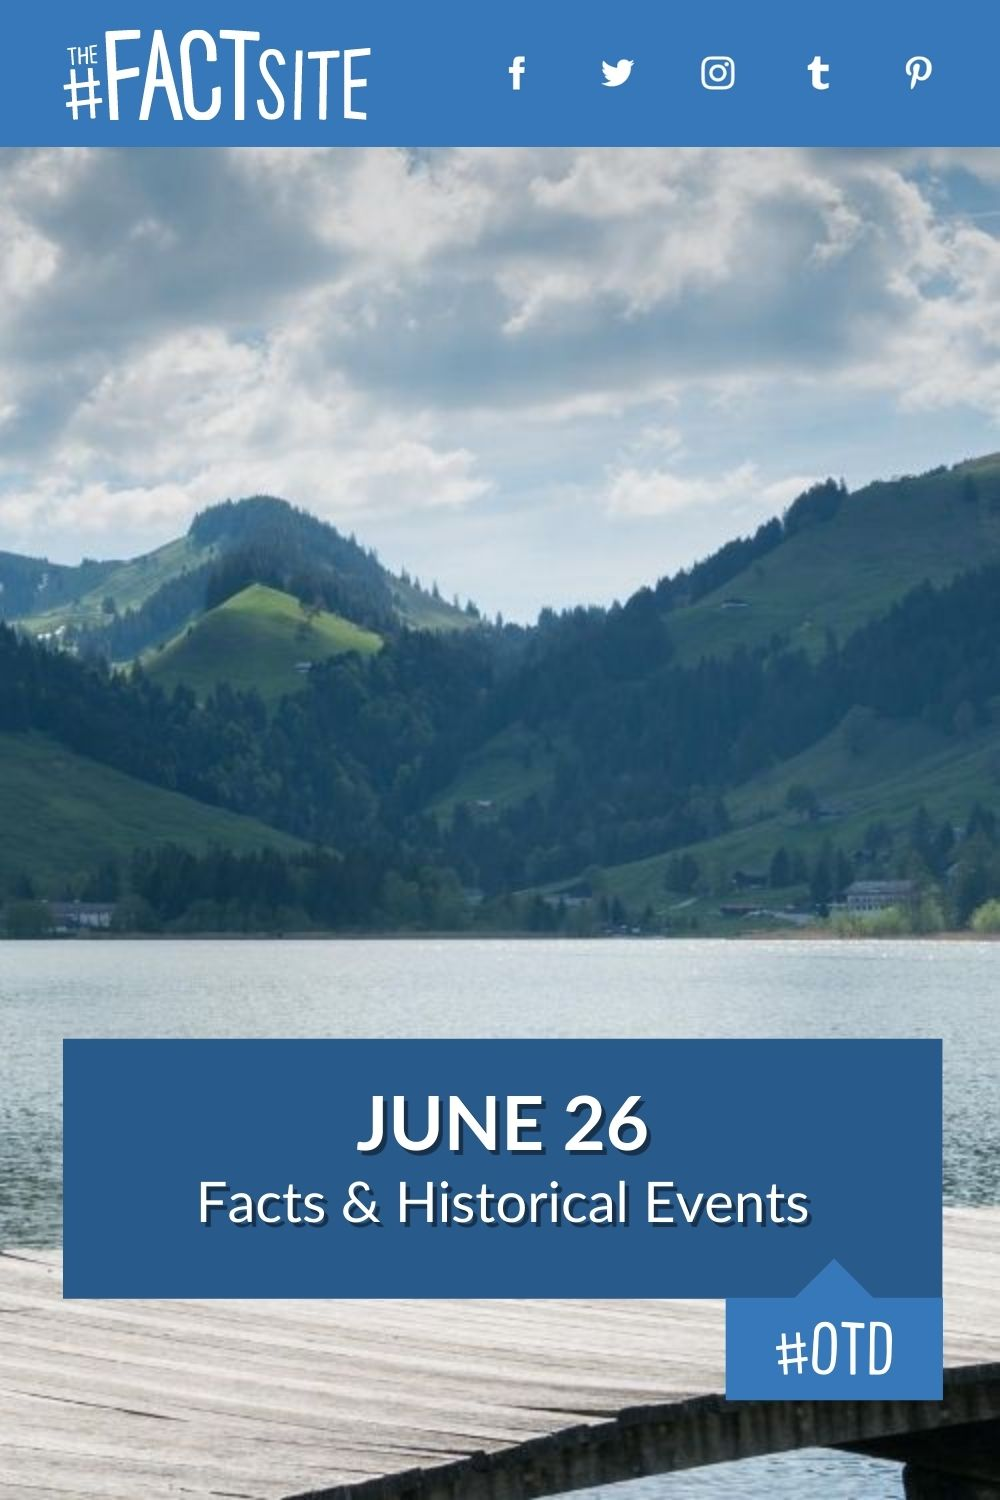 Facts & Historic Events That Happened on June 26